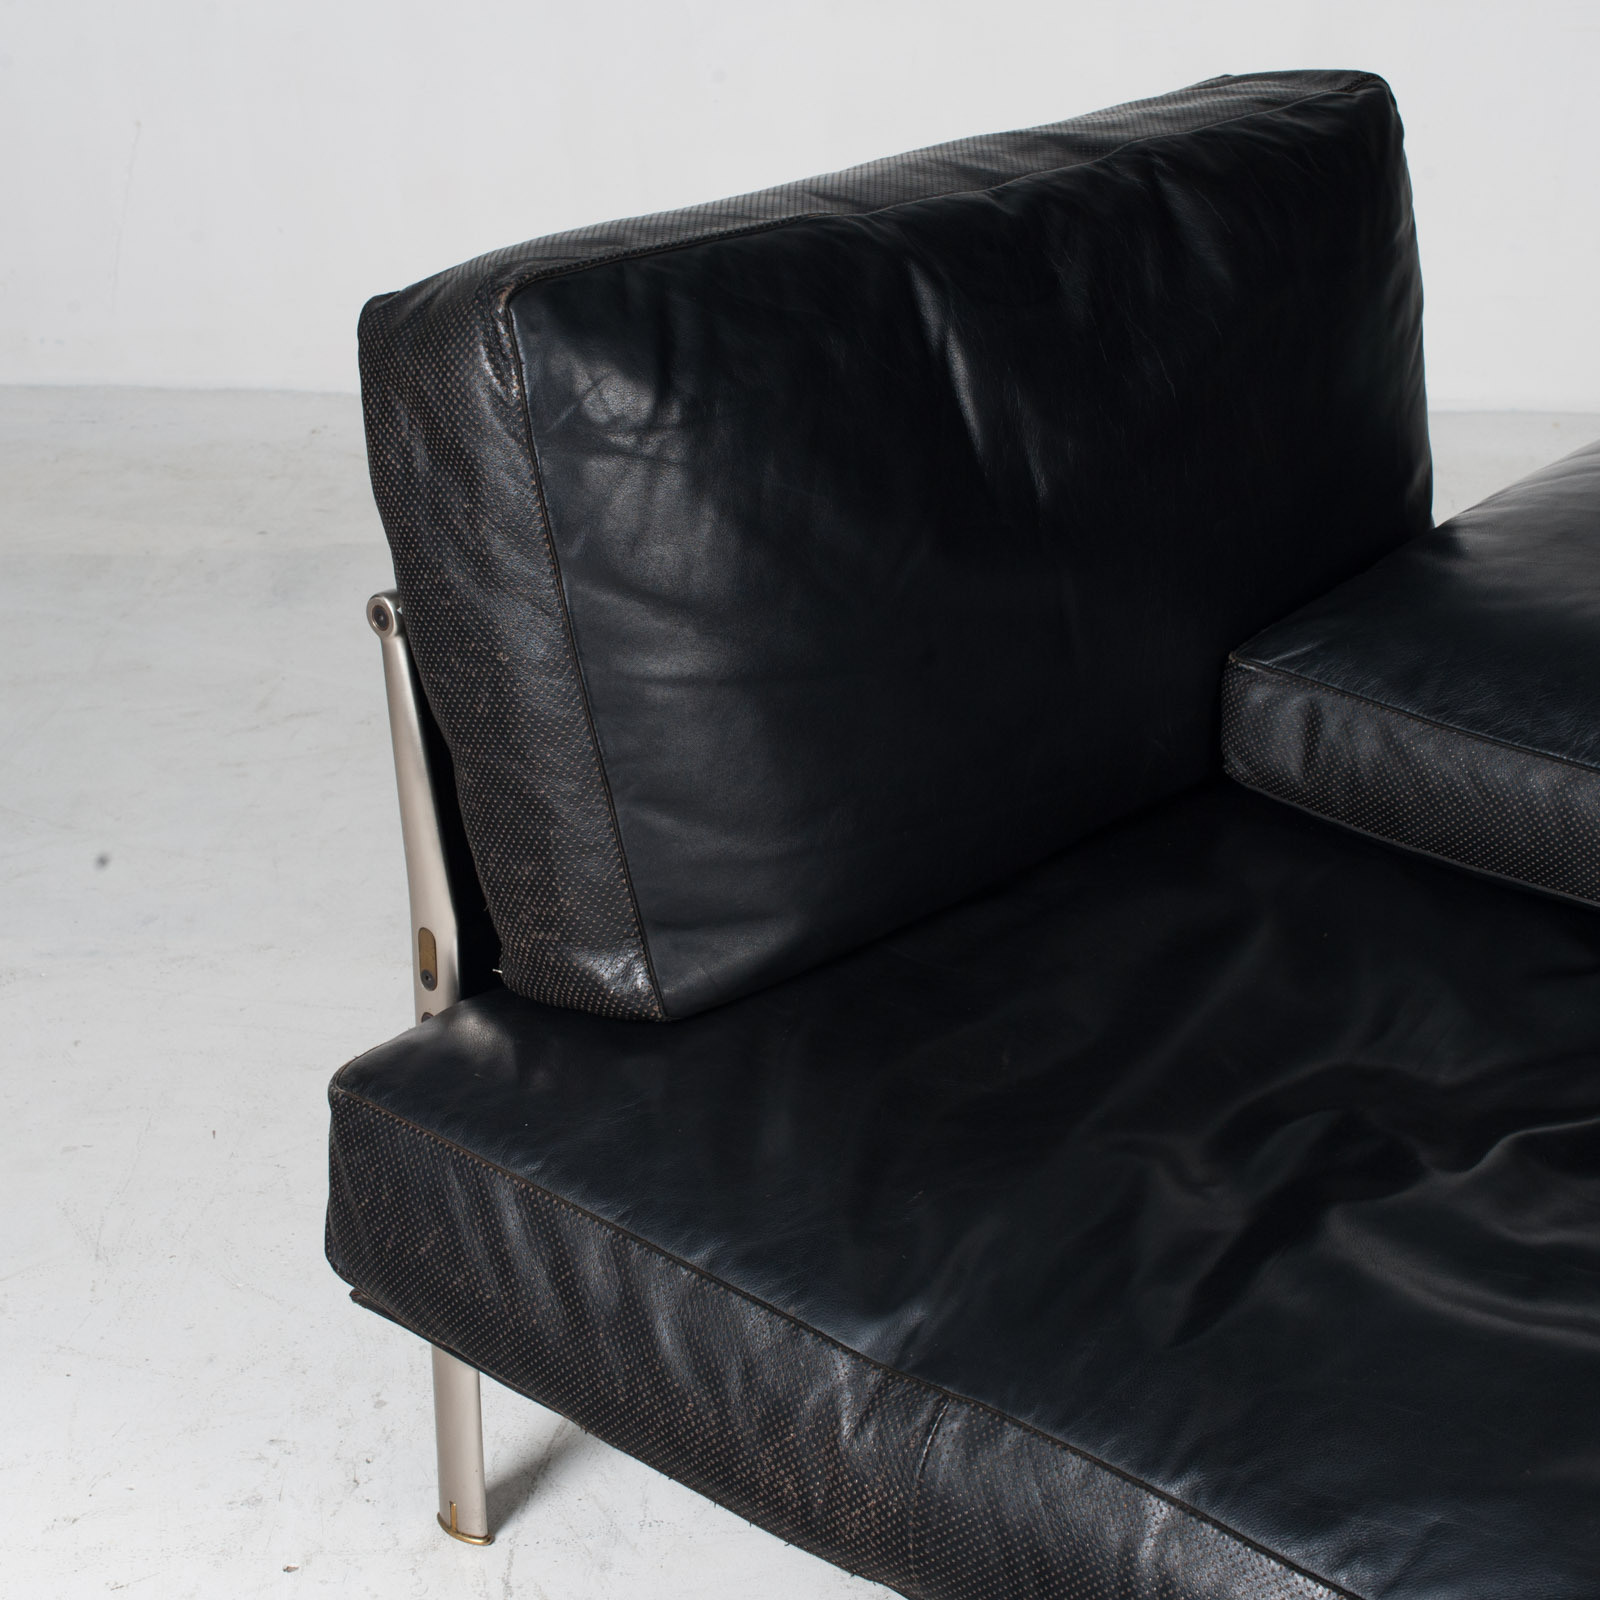 Model Diesis Chaise Lounge For B&b Italia By Antonio Citterio In Black Leather 1970s Italy 05